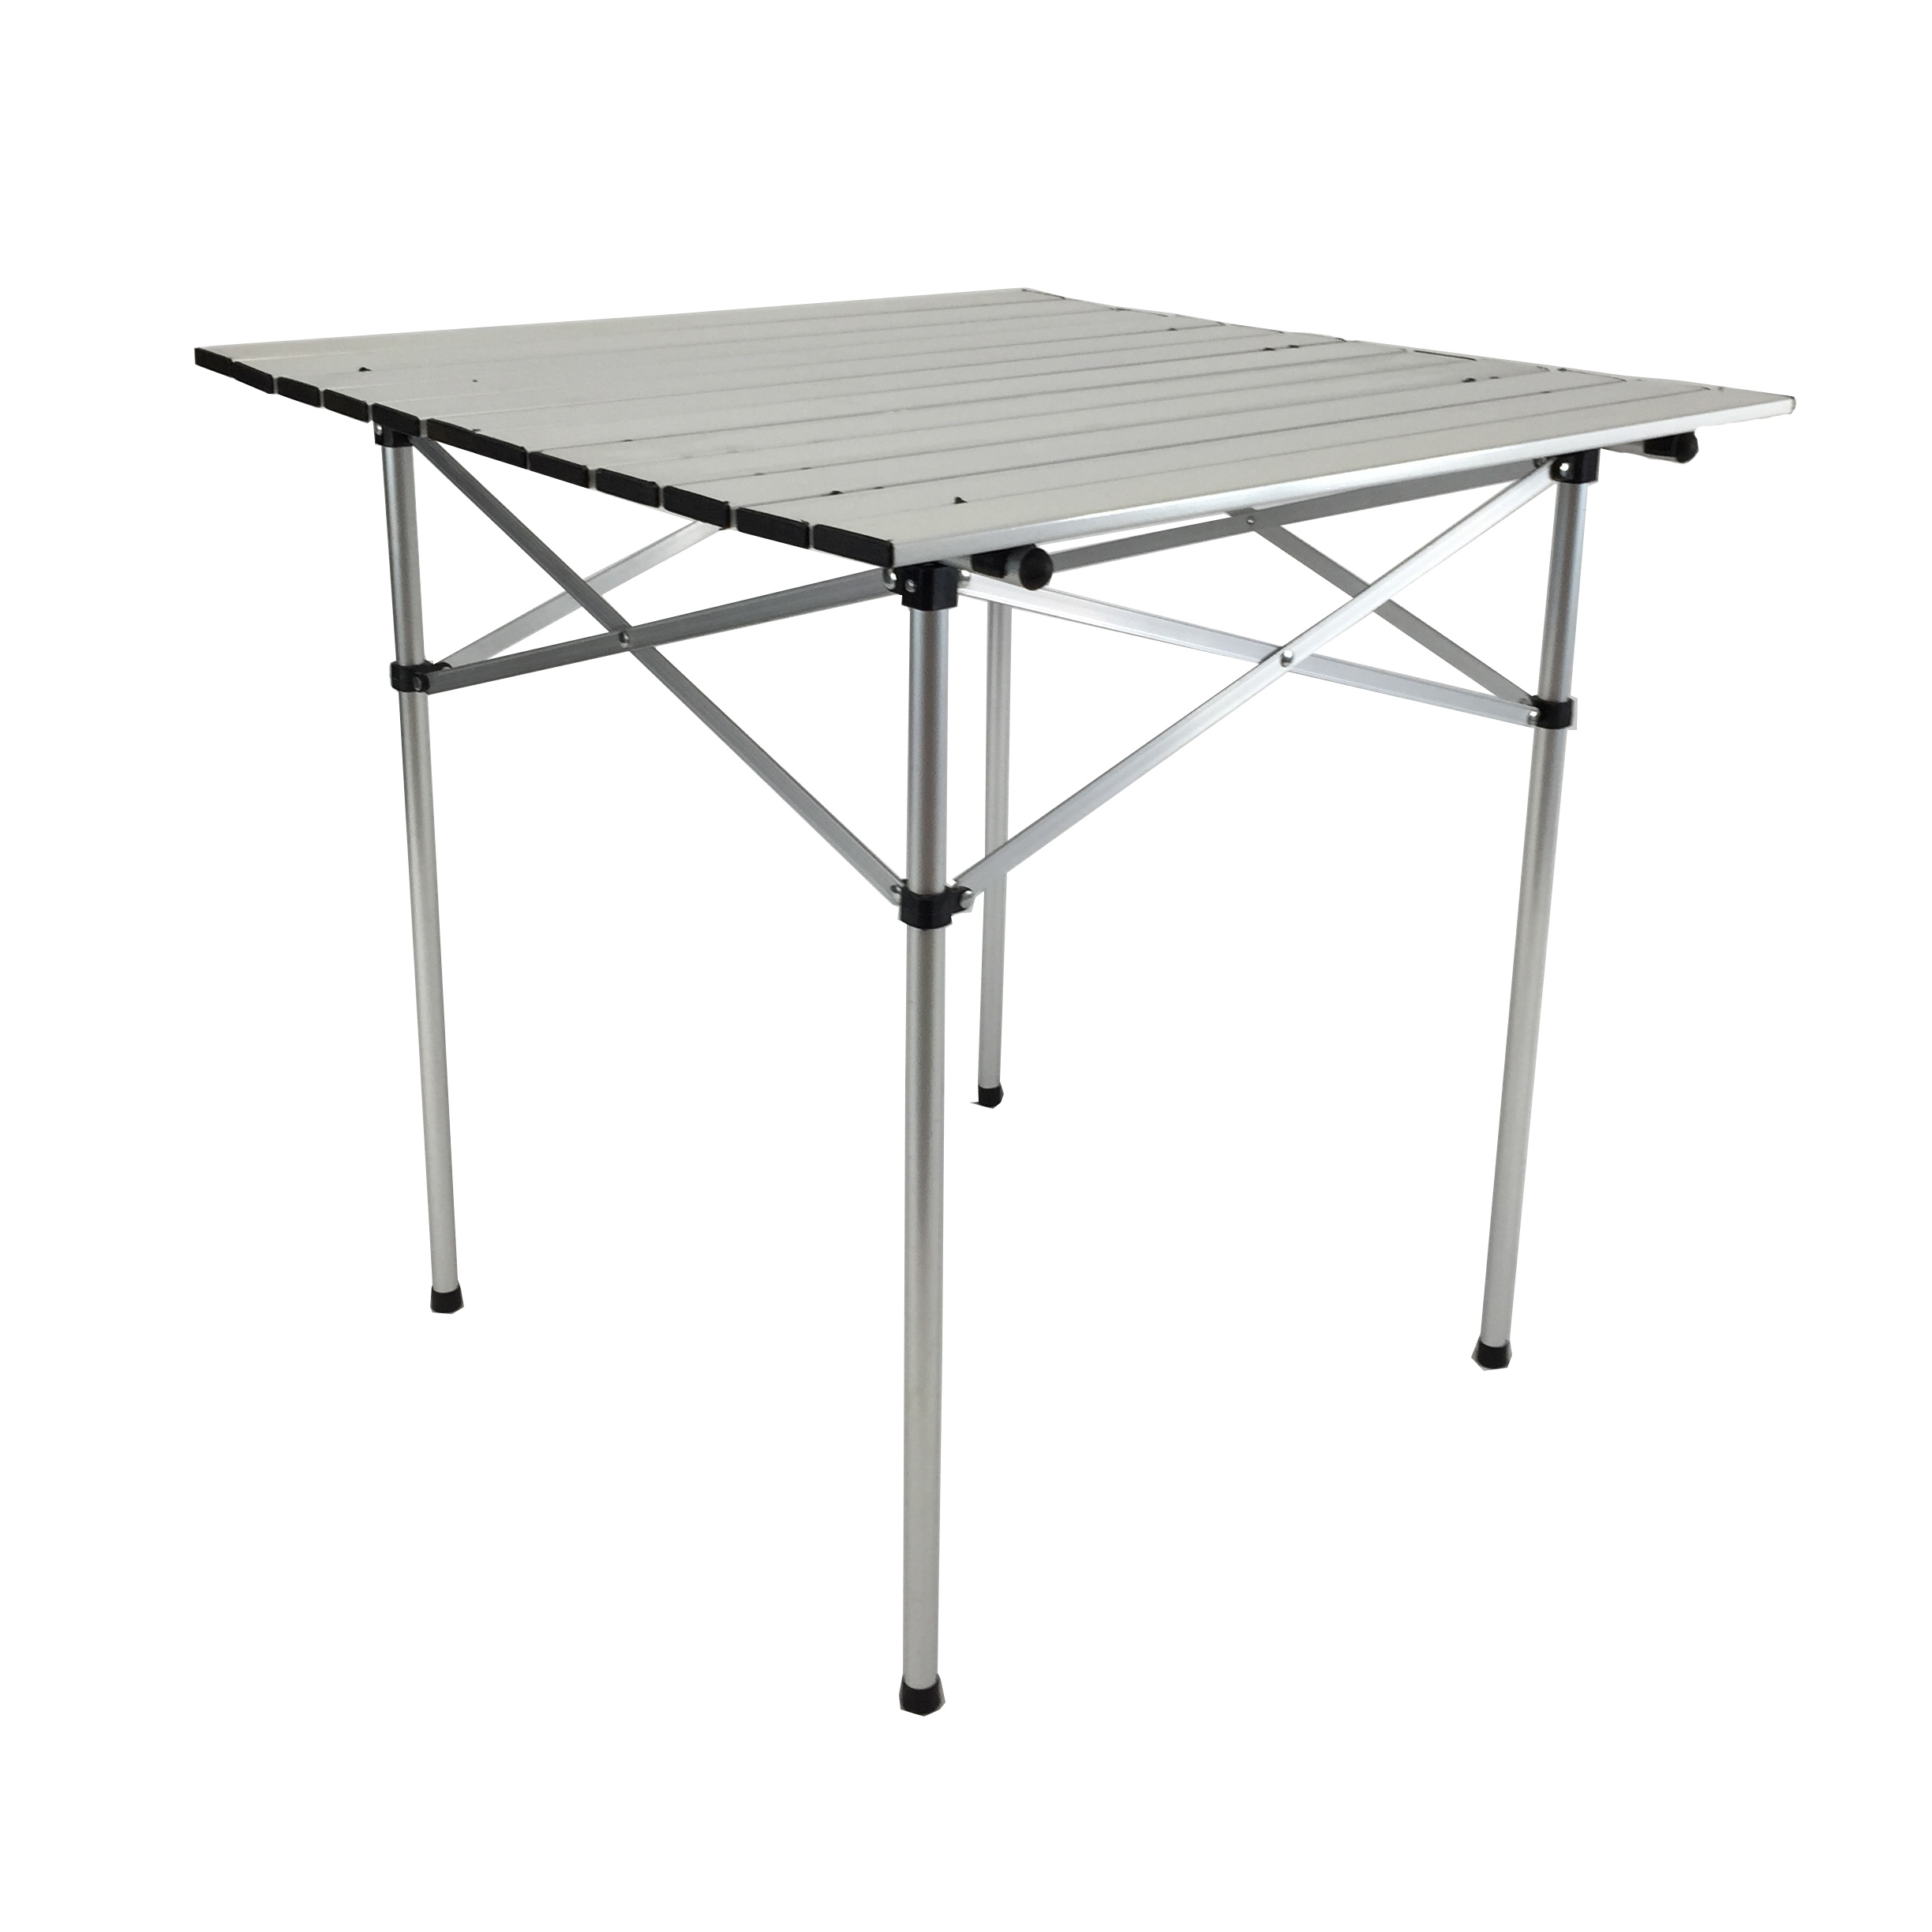 Roll Up Top Aluminum Camp Portable Camping Picnic Table With Carrying Bag  Silver